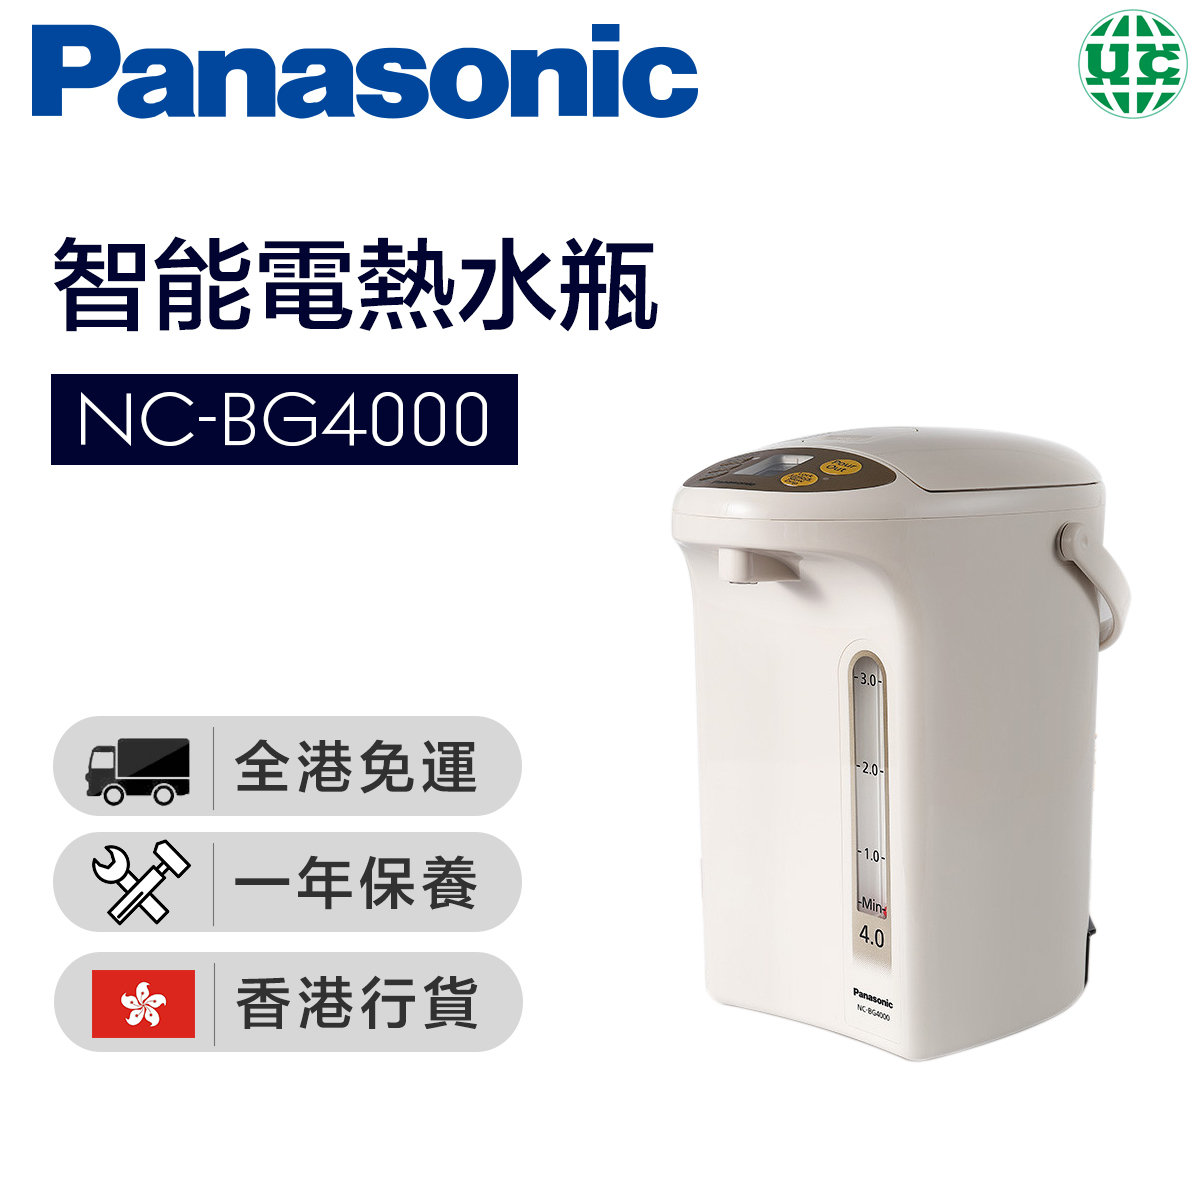 NC-BG4000 4.0 liter Electric pump water and electricity thermos(Hong Kong licensed)